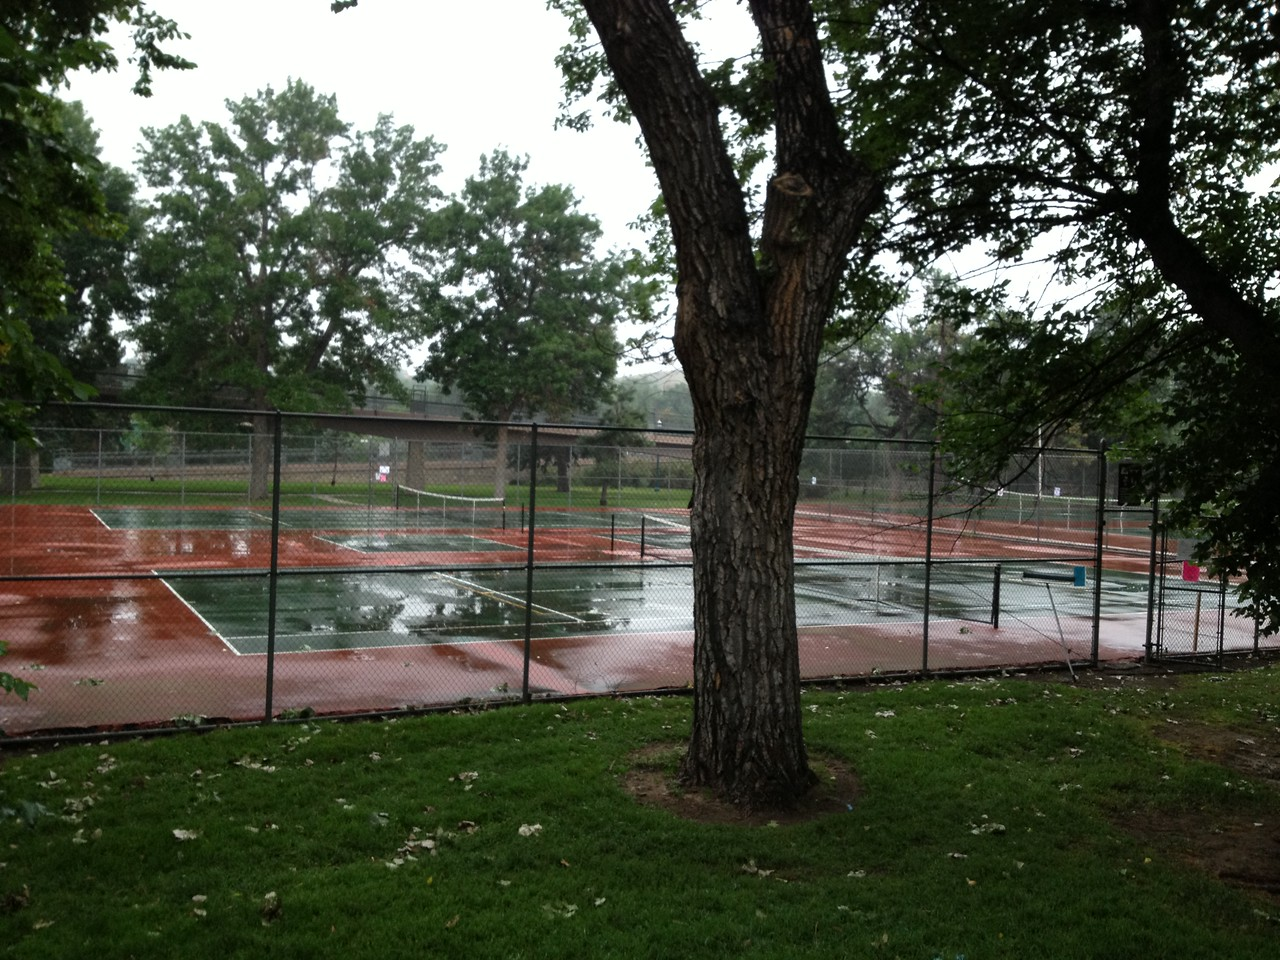 Rats - the overnight cleaning crew forgot to dry the courts!